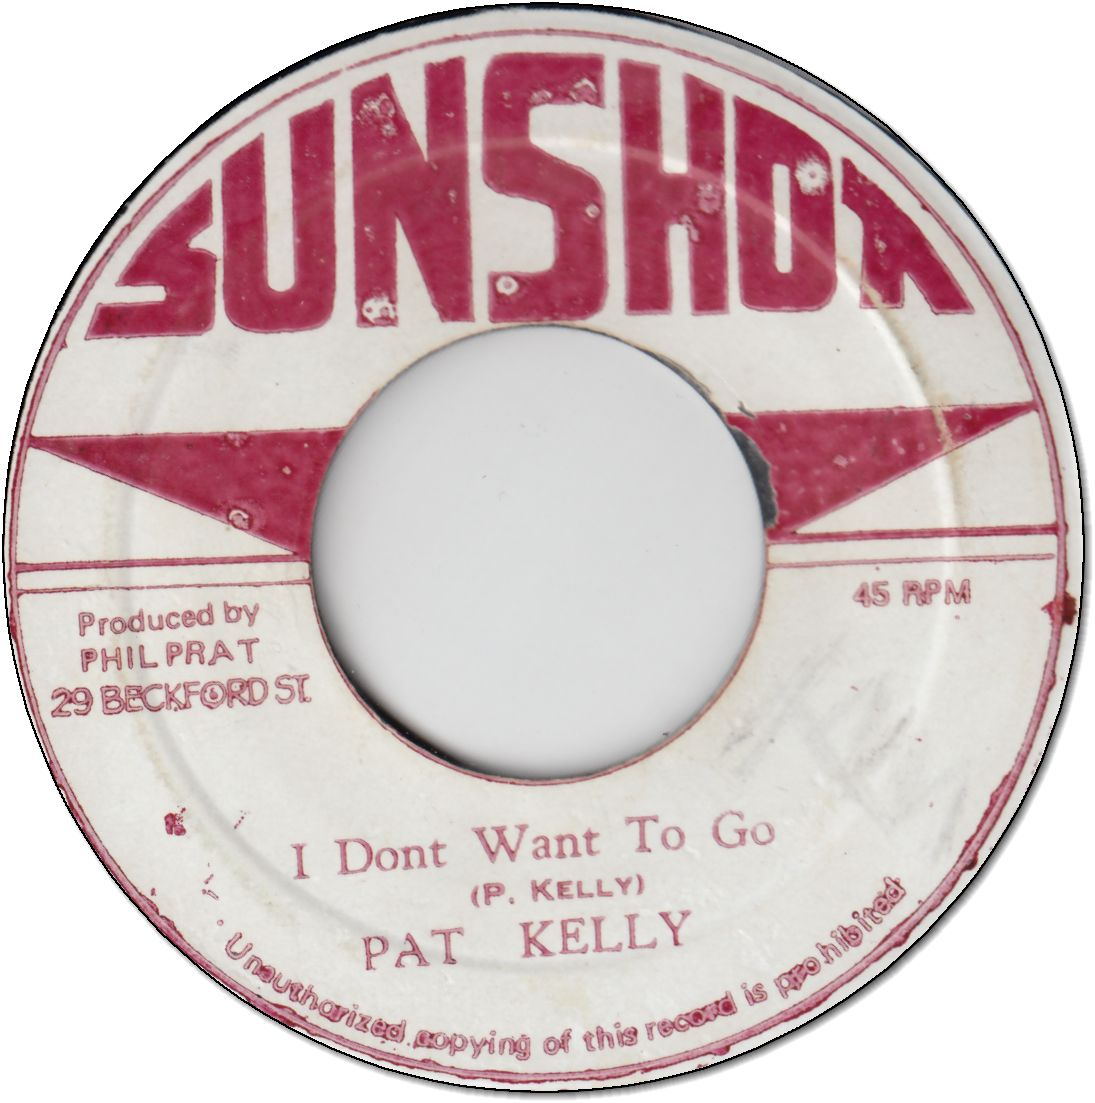 I DON'T WANT TO GO (VG+) / VERSION (VG)